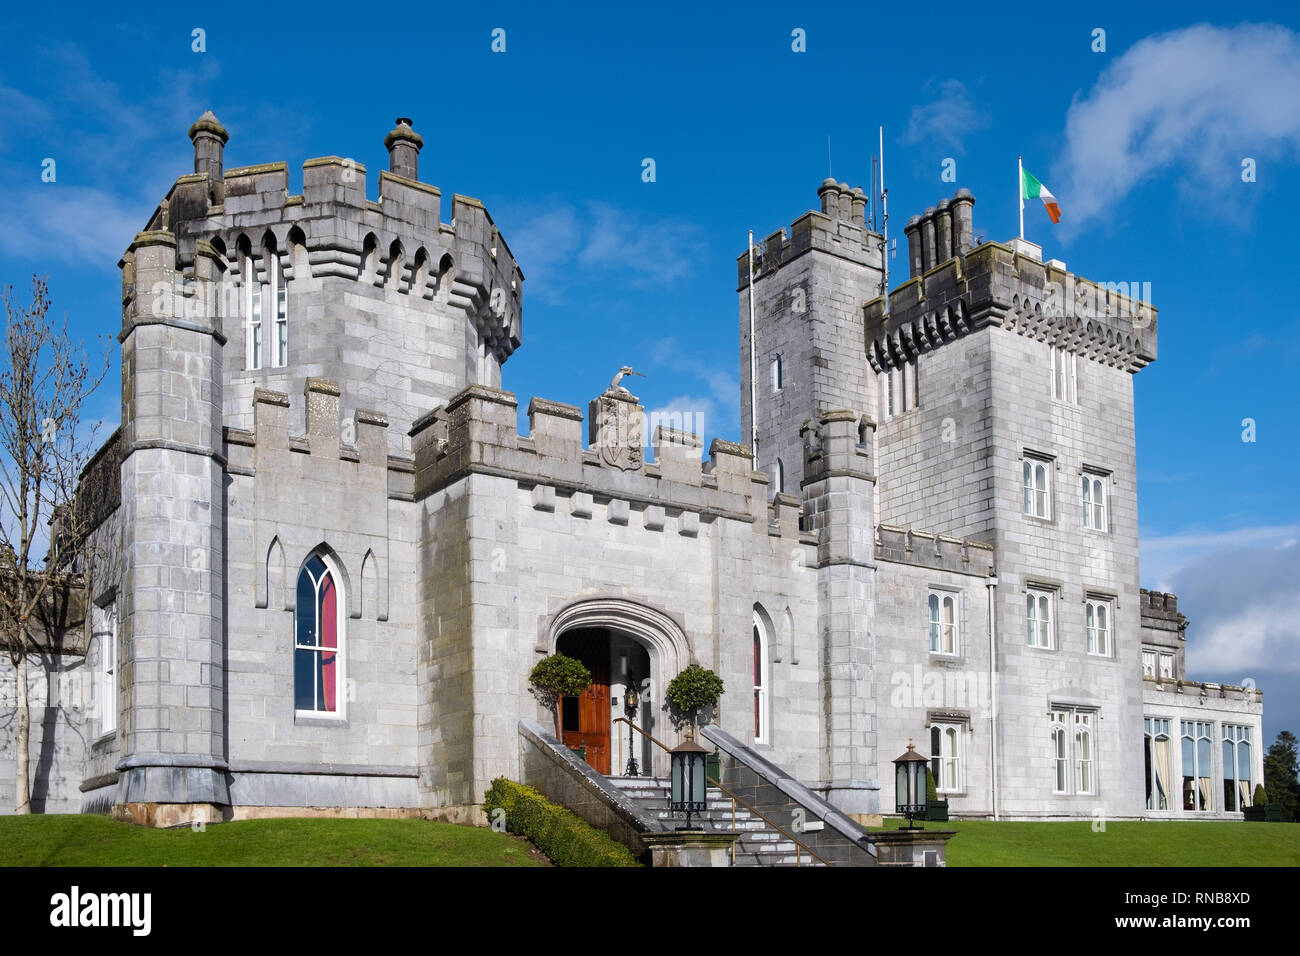 The historic 16th Century Dromoland Castle Hotel and Golf Resort in County Clare, Ireland on the Wild Atlantic Way. - Stock Image